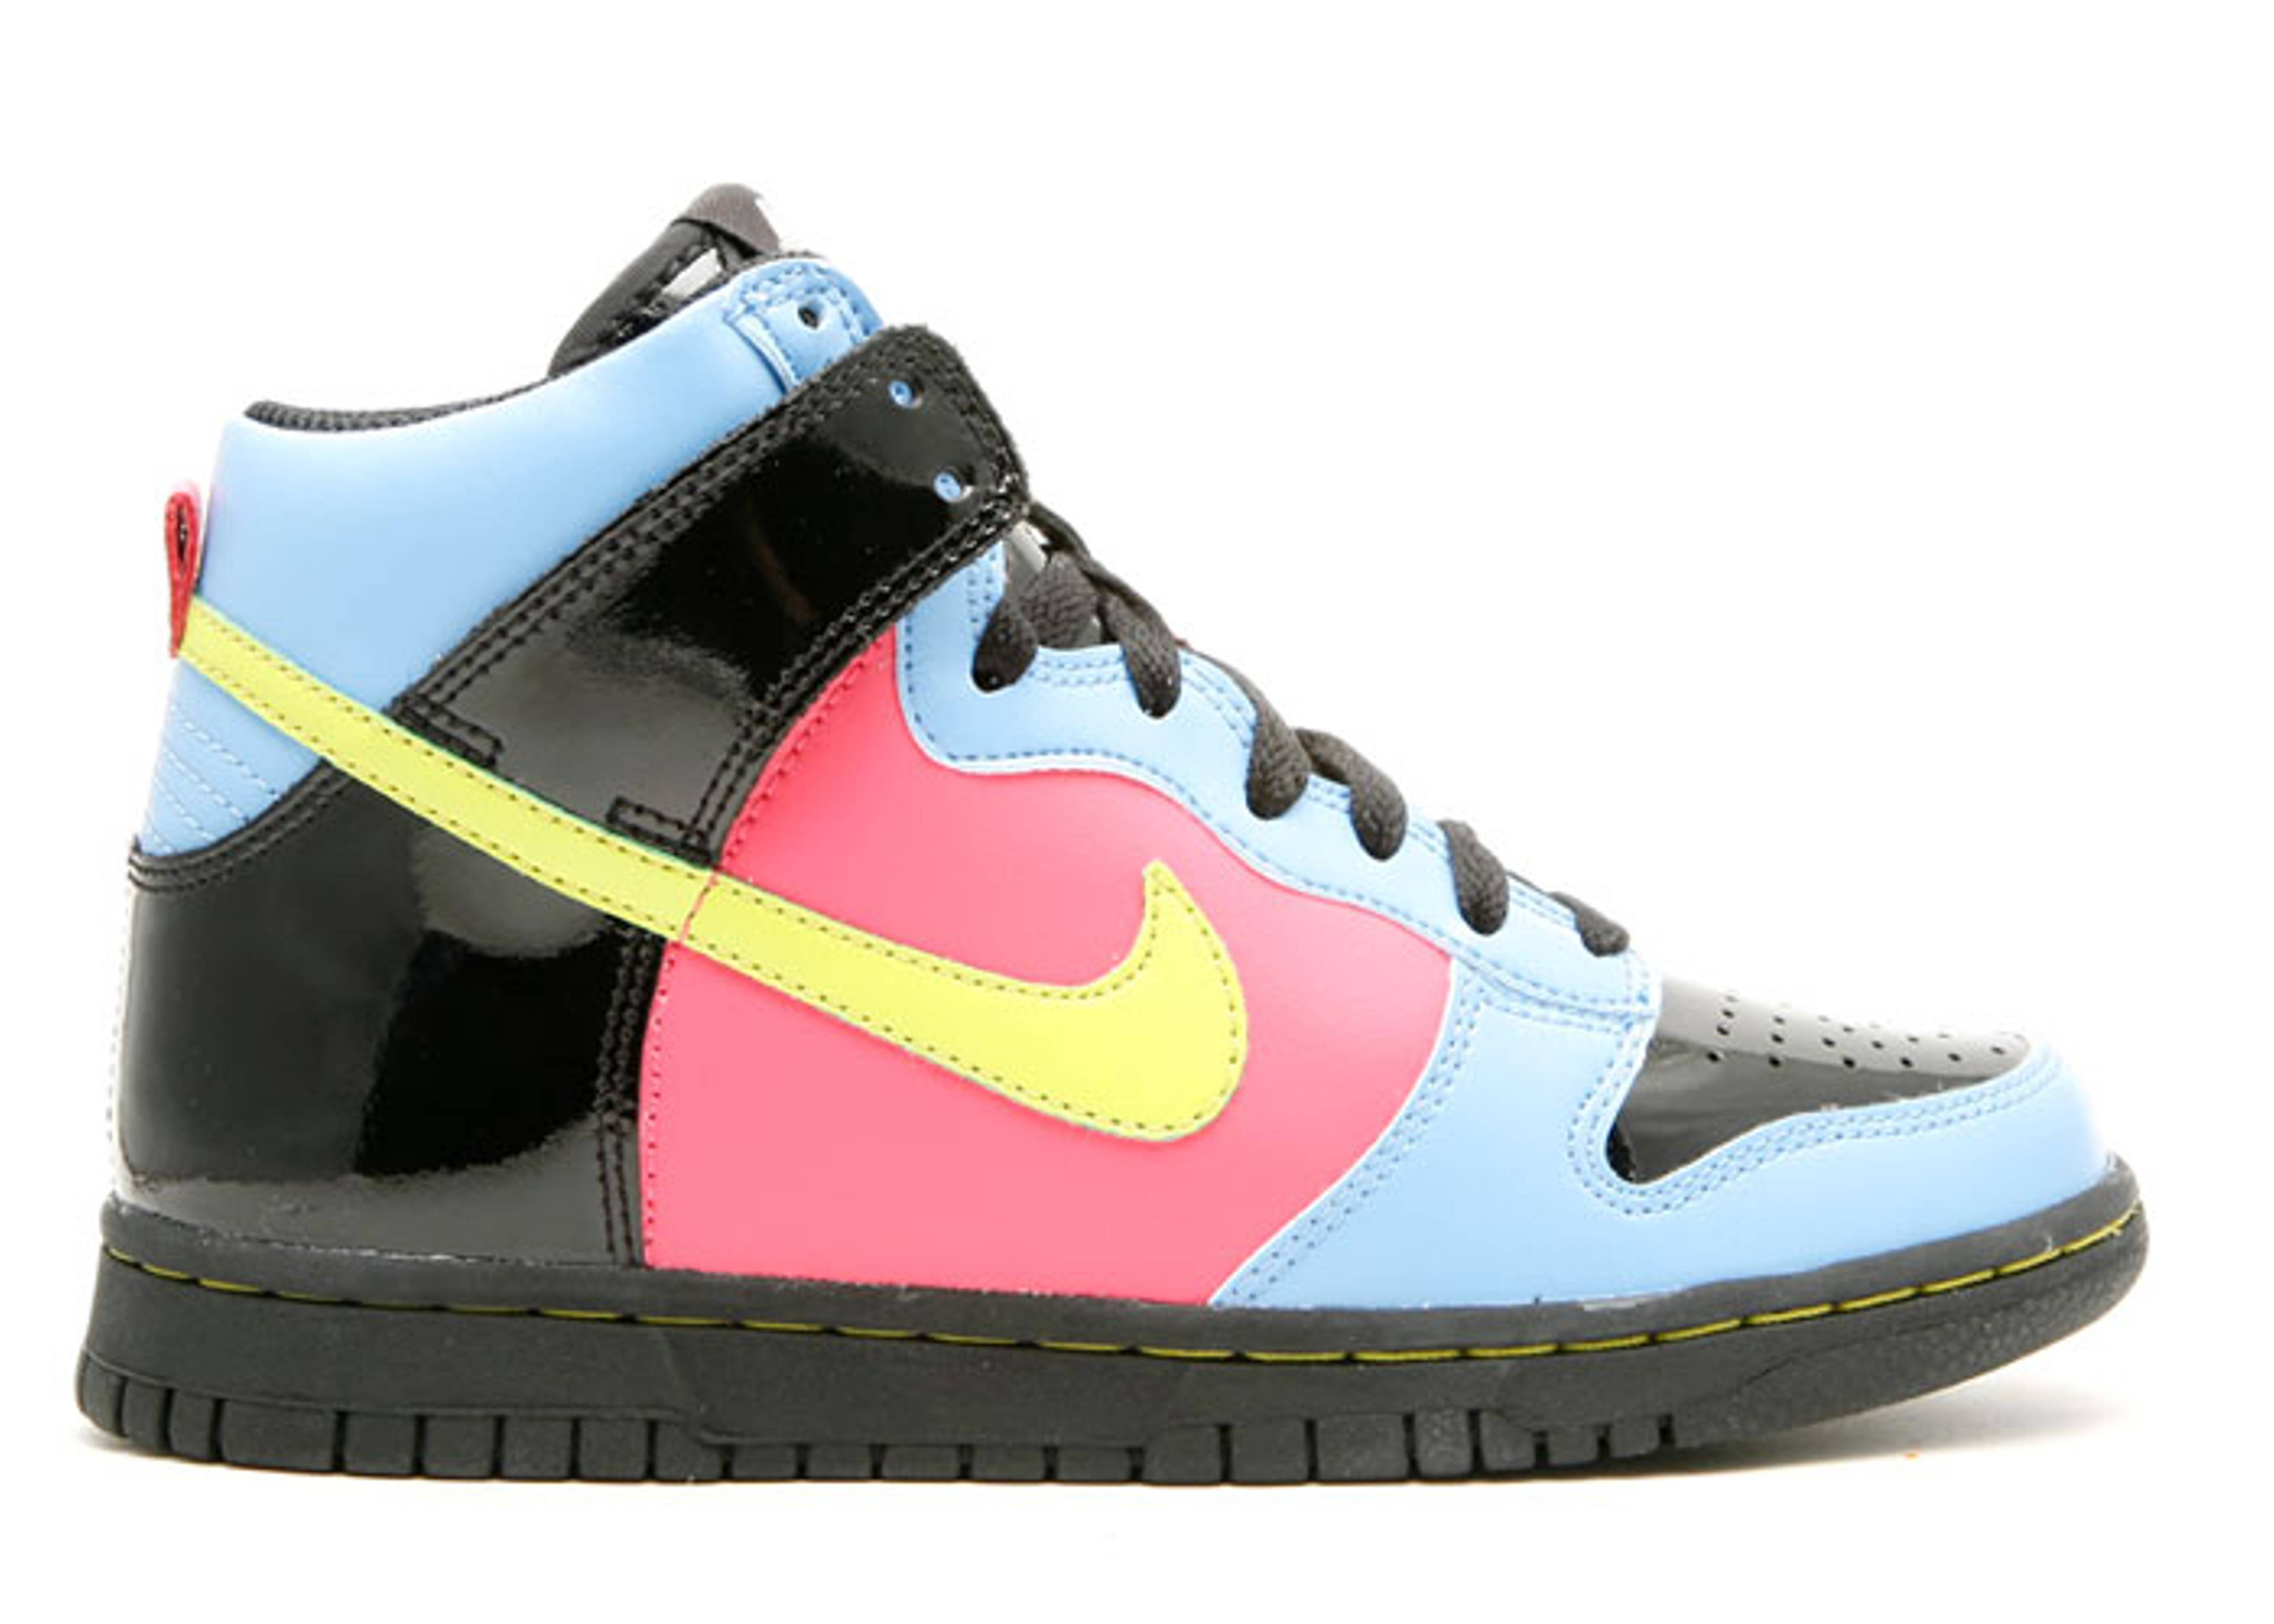 new styles 8f08d 3df4a ... low price dunk high gs nike 308319 033 black bright cactus university  blue flamingo flight club